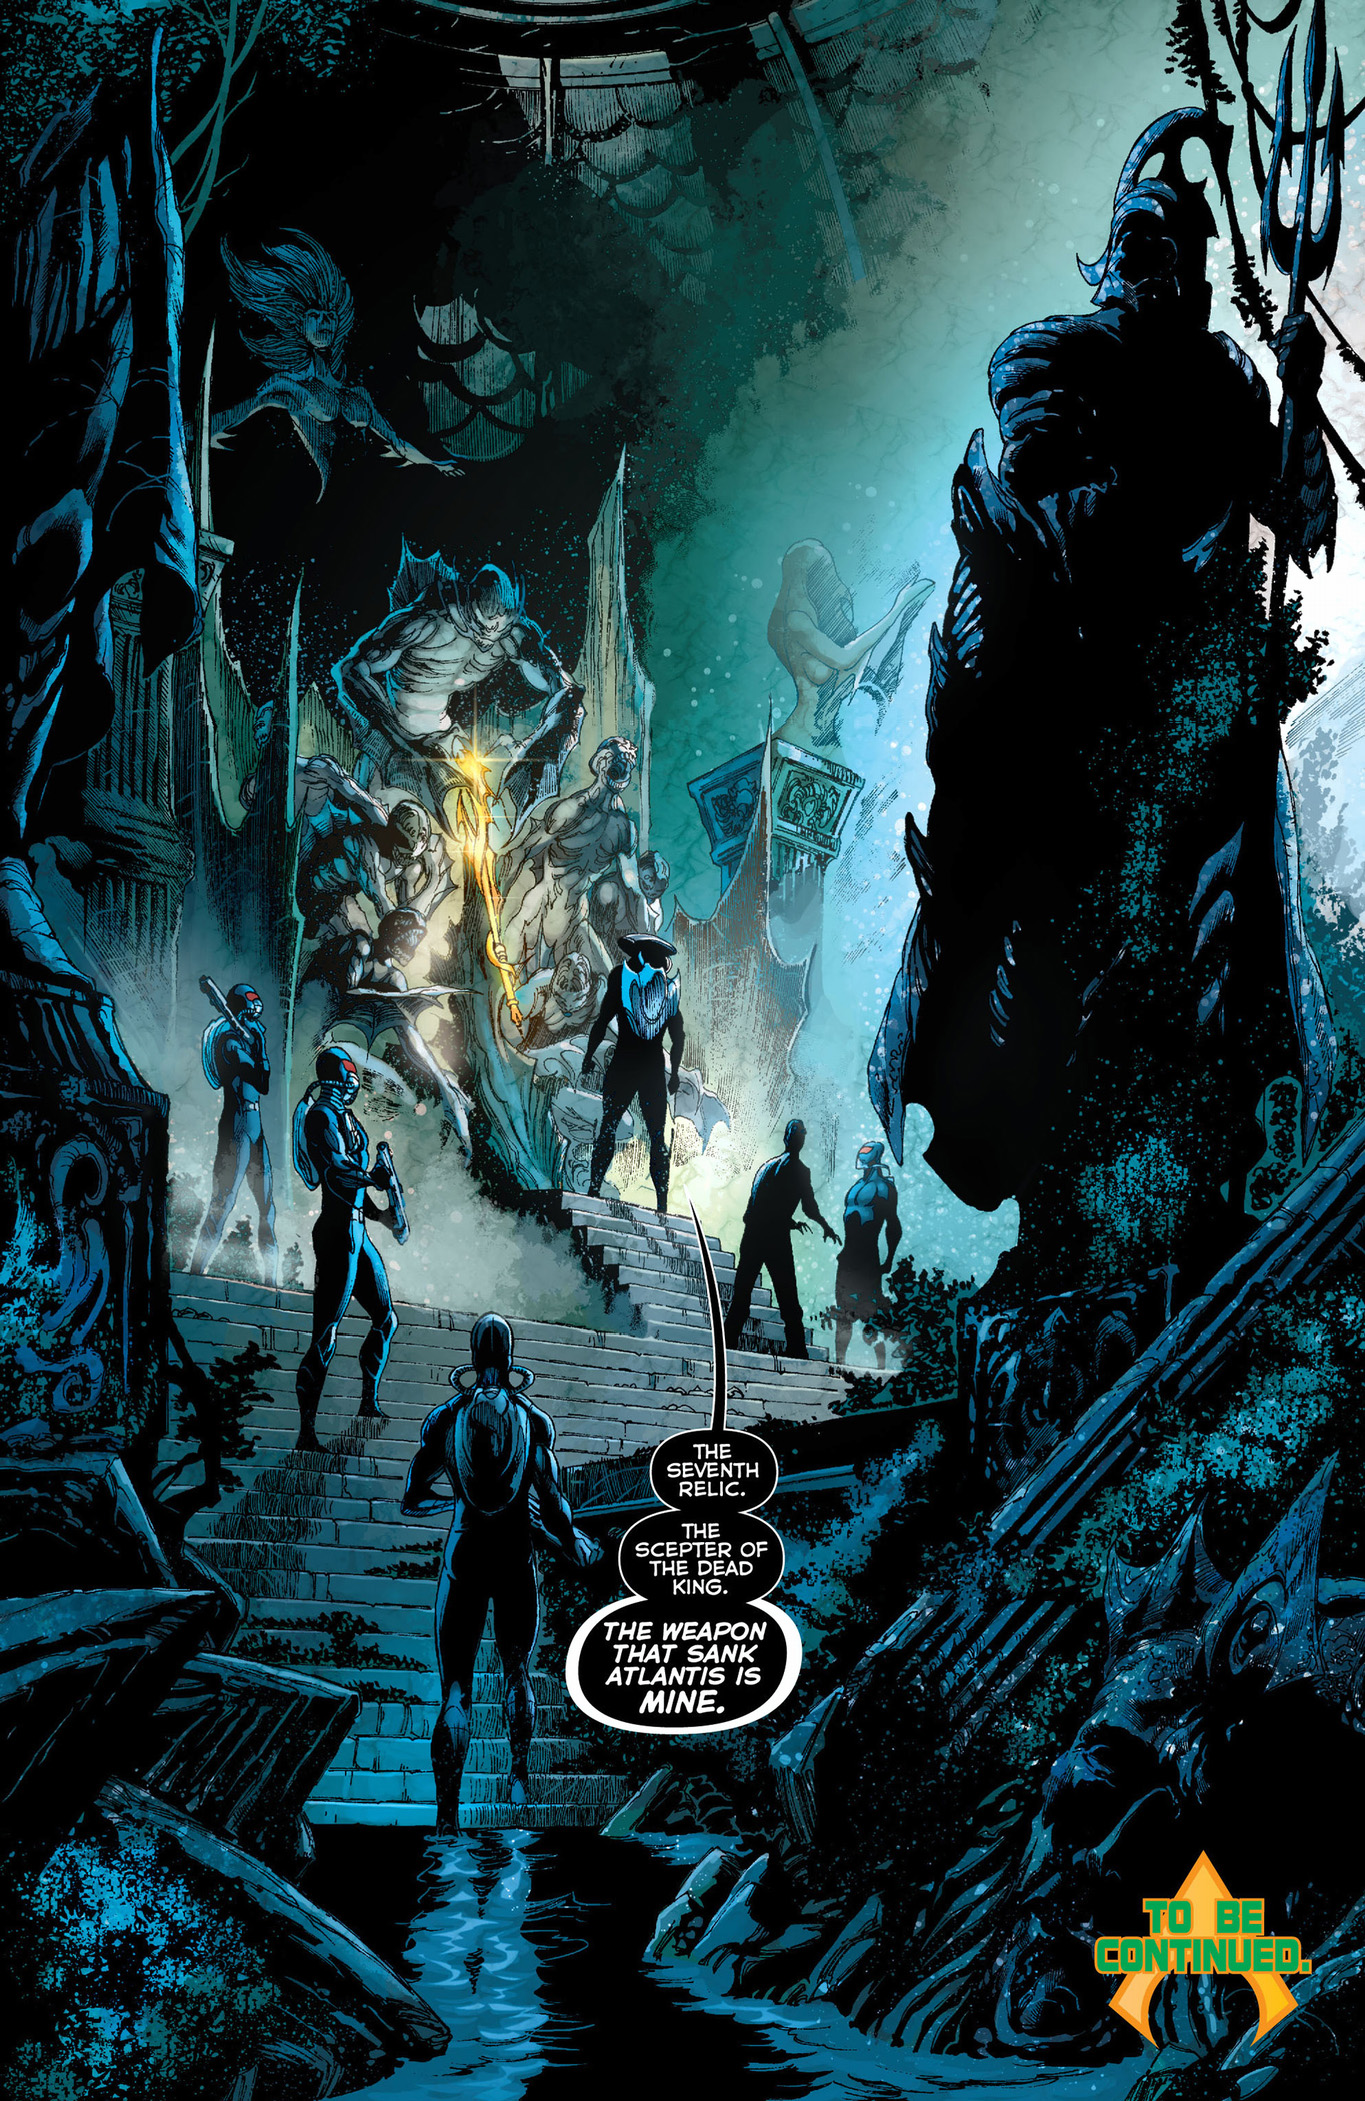 black manta finds the scepter of the dead king